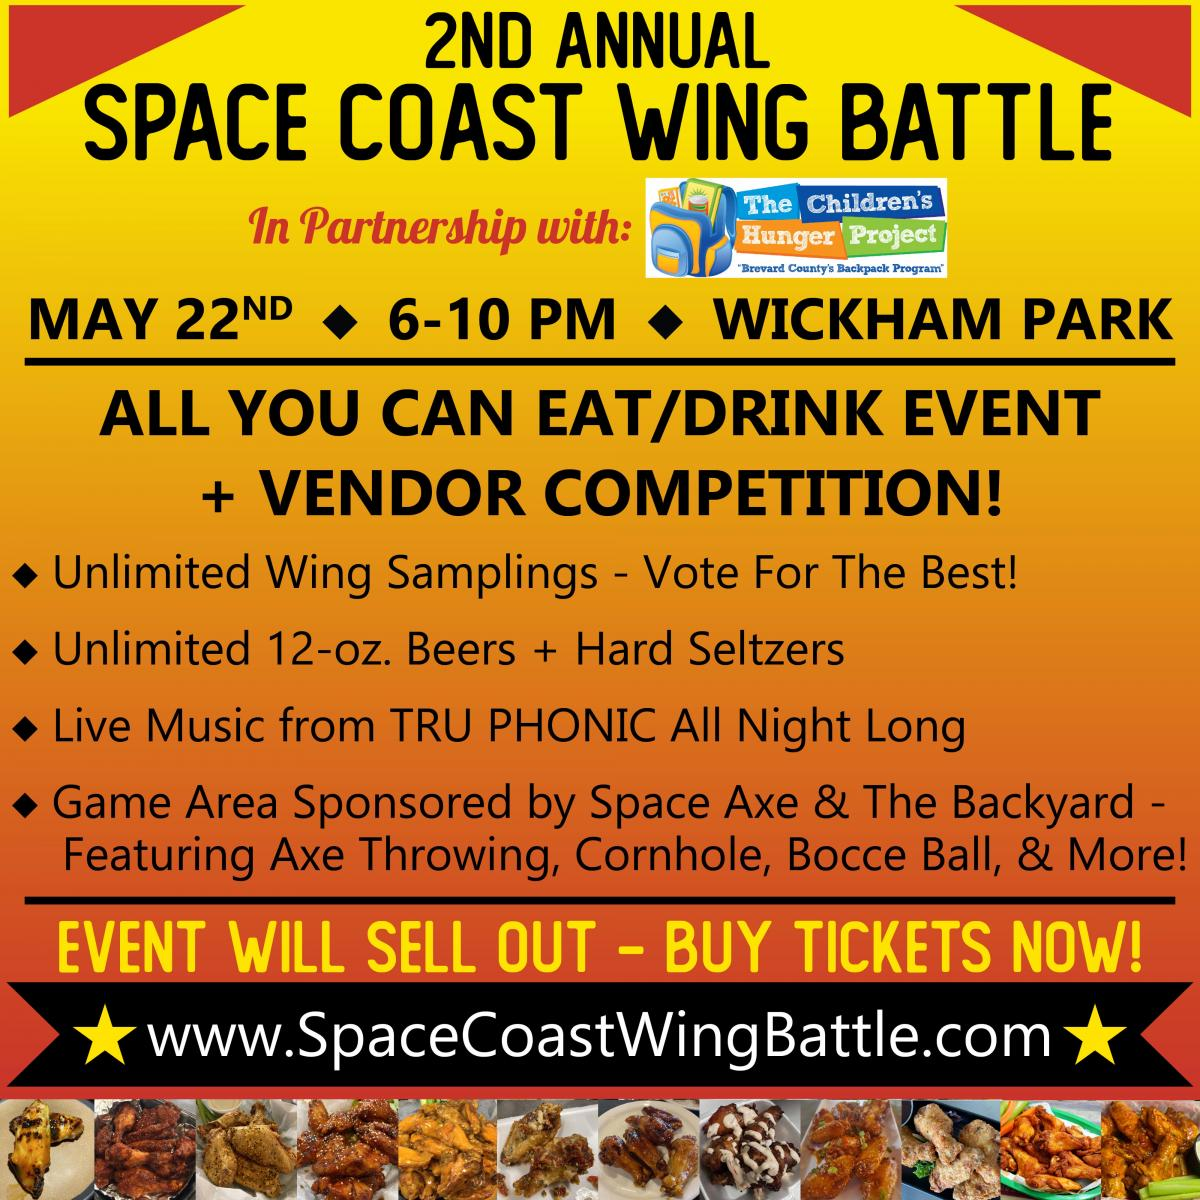 2nd Annual Space Coast Wing Battle in Partnership with The Children's Hunger Pro